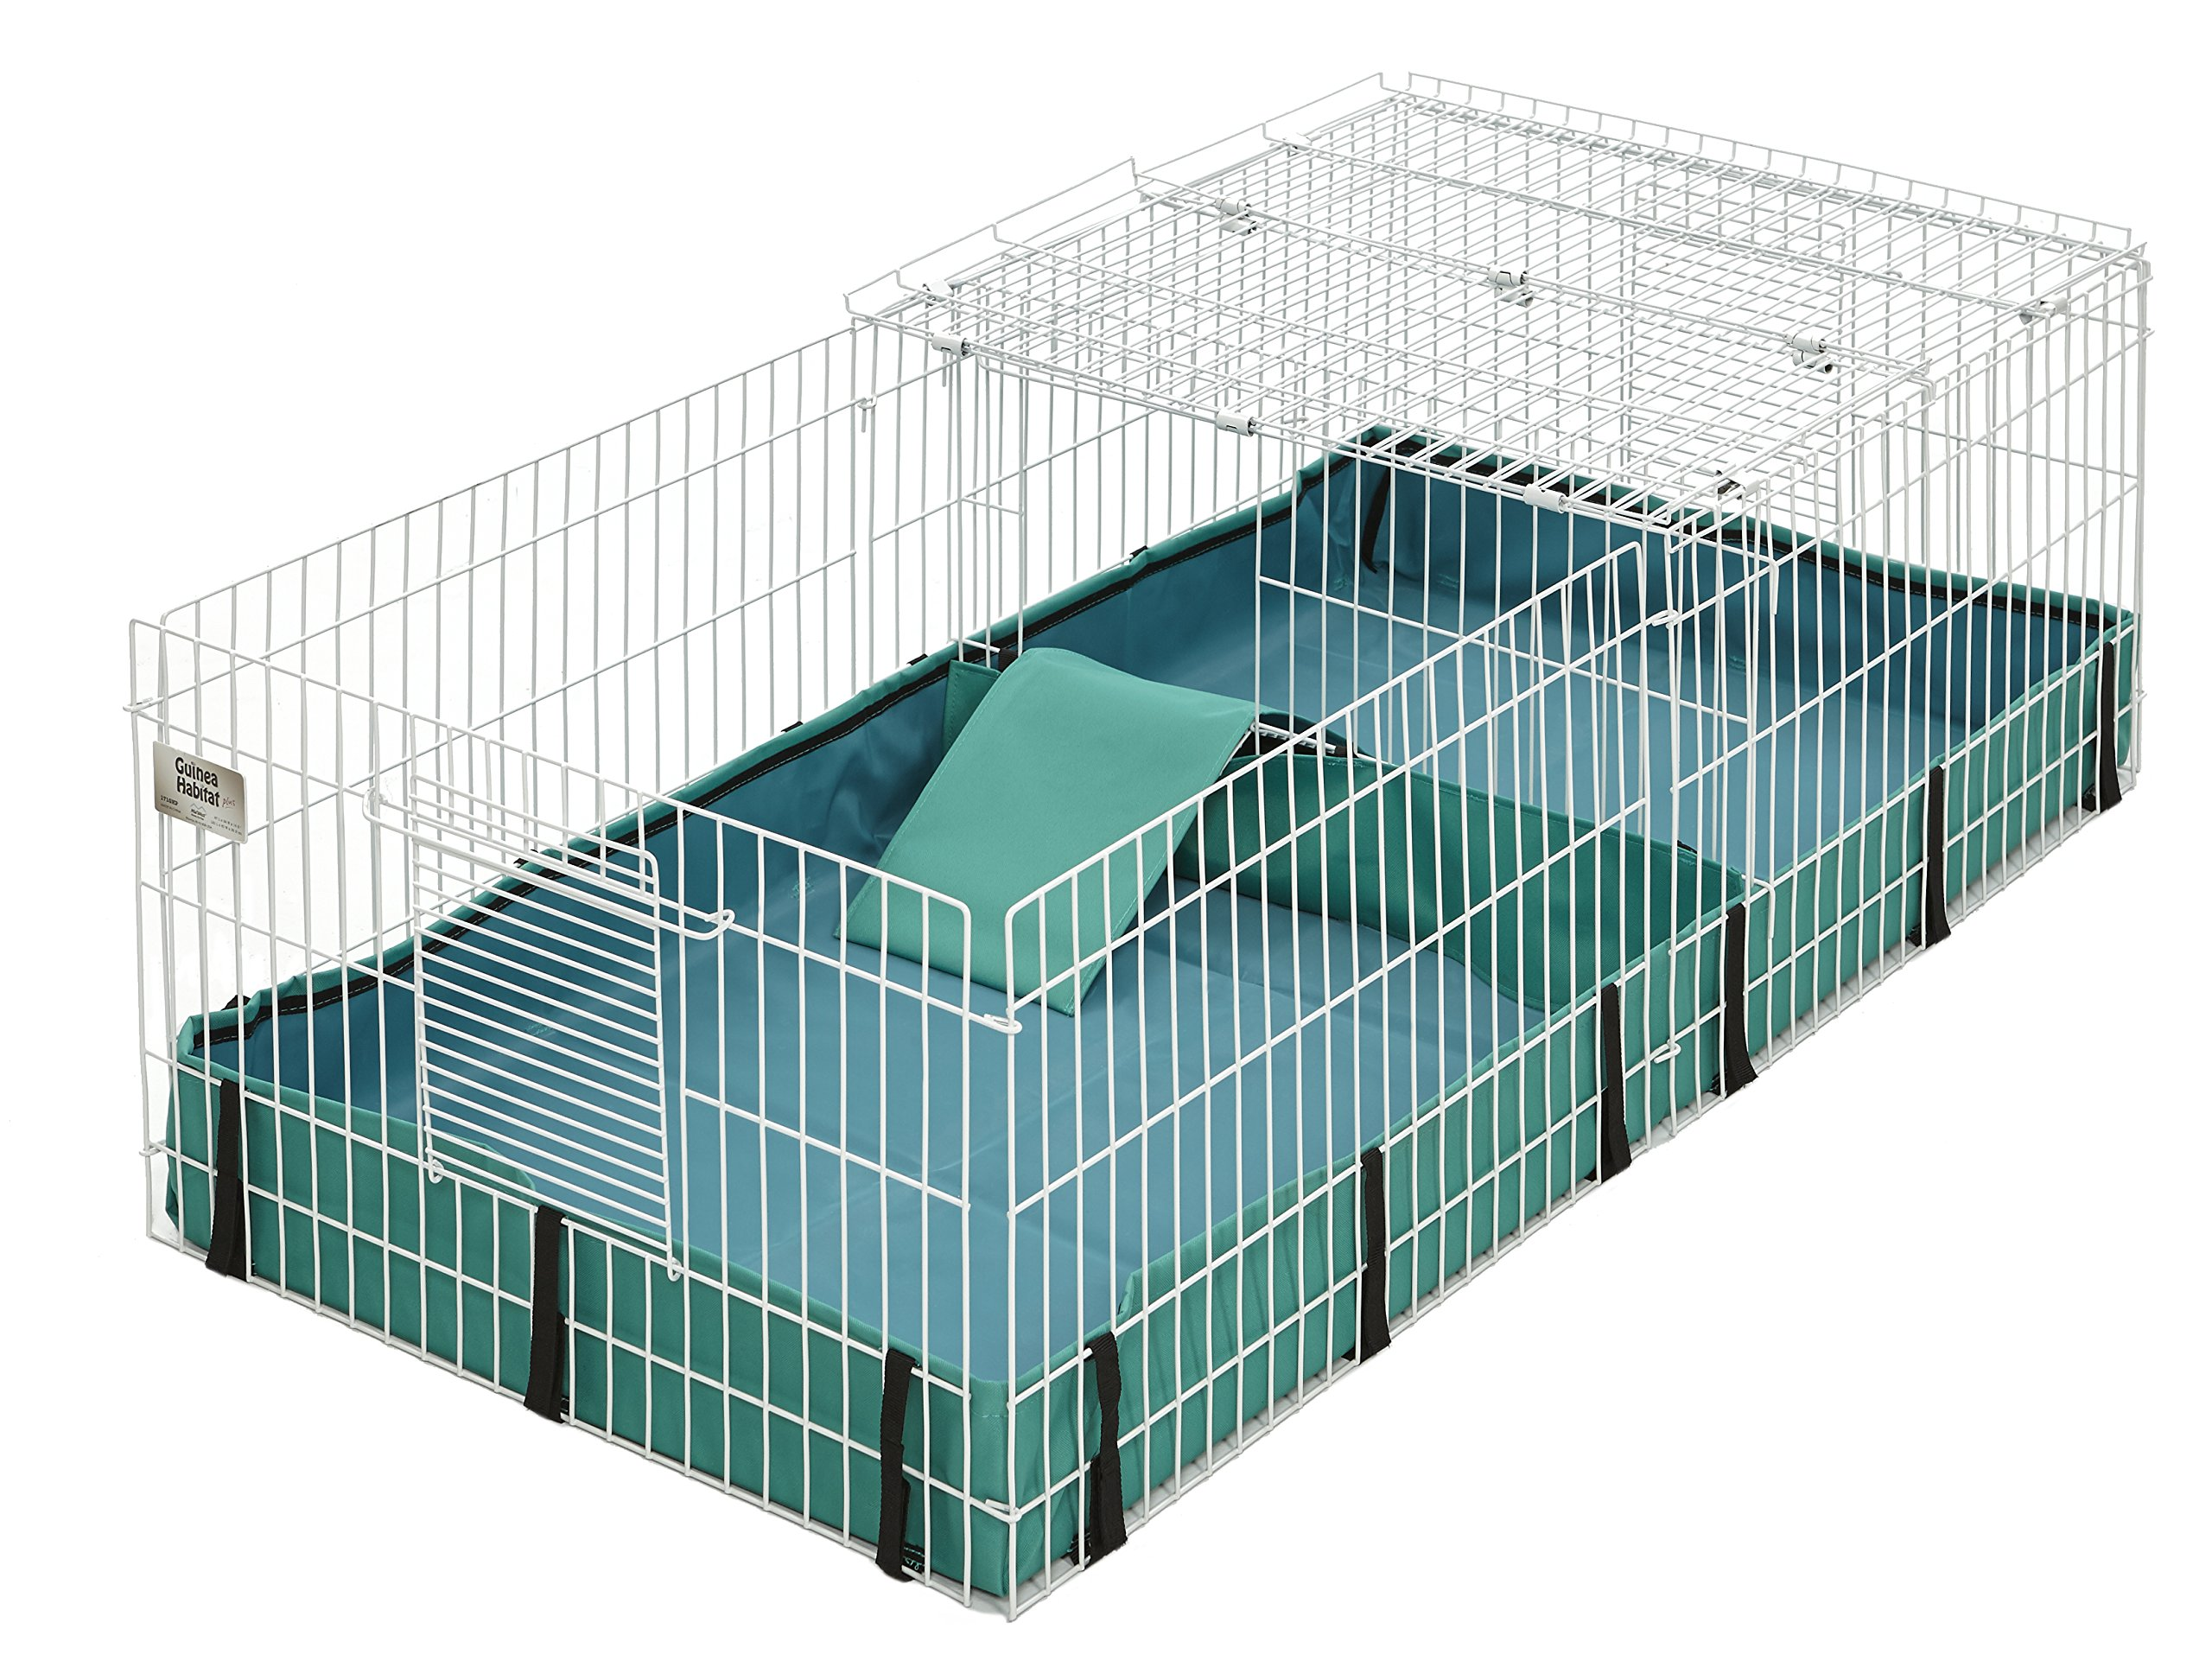 Guinea Habitat Plus Guinea Pig Cage by MidWest w/ Top Panel, 47L x 24W x 14H Inches by MidWest Homes for Pets